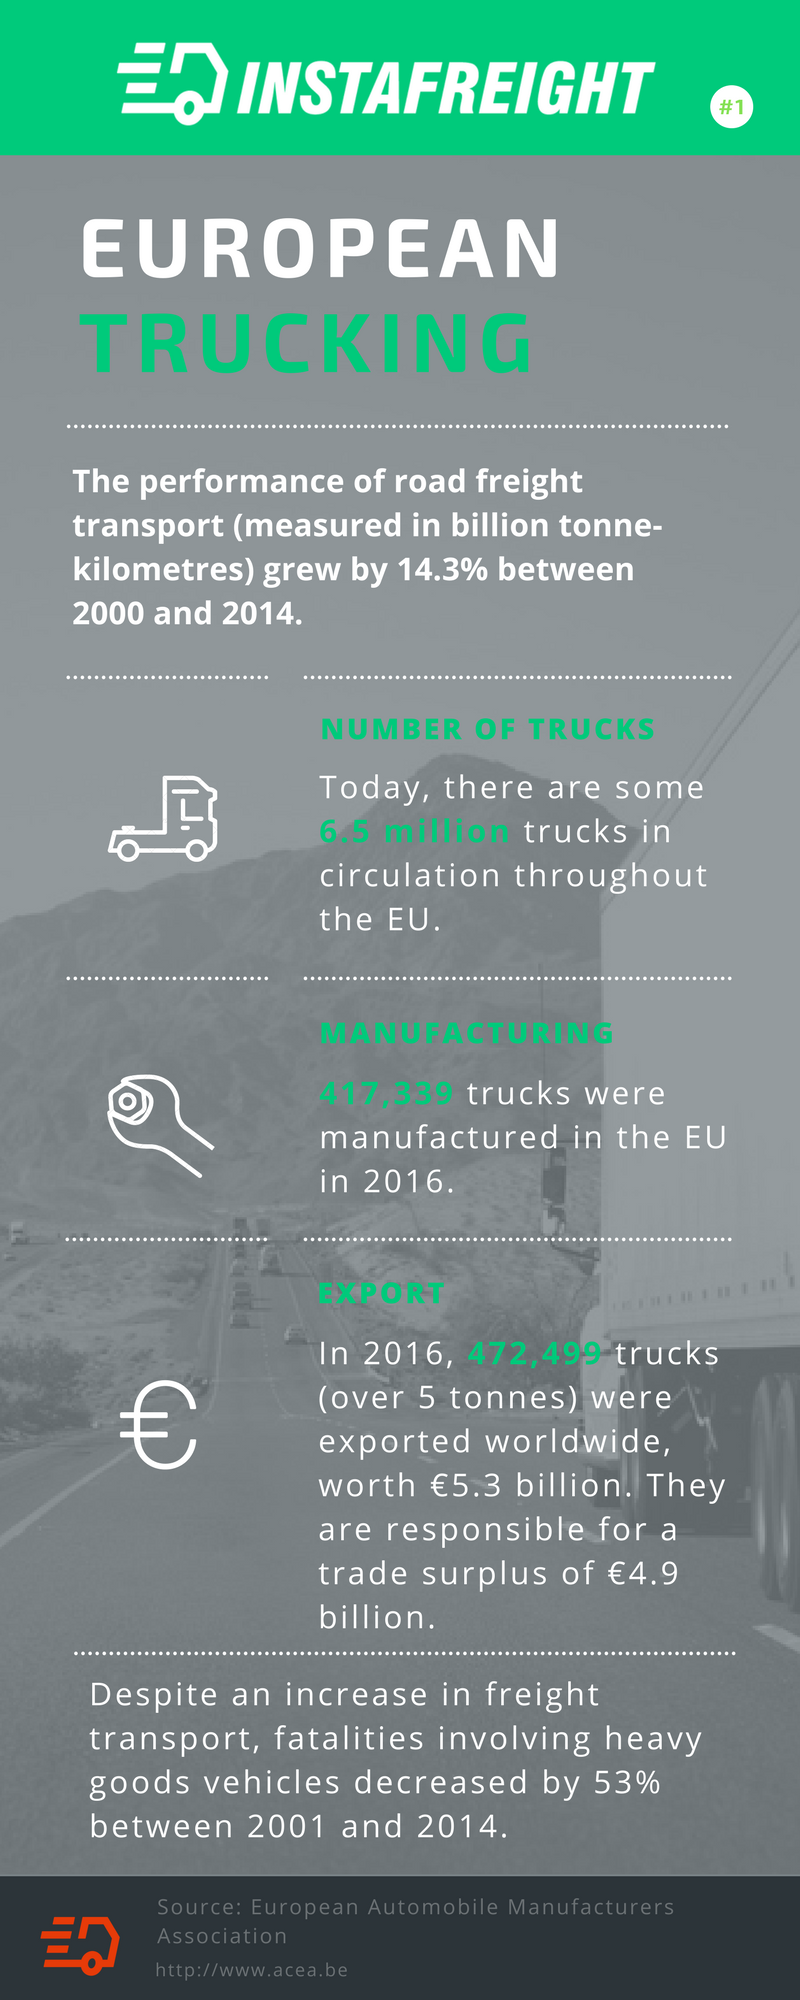 European trucking infographic - Improving The Efficiency of Road-Freight Transport Is Critical